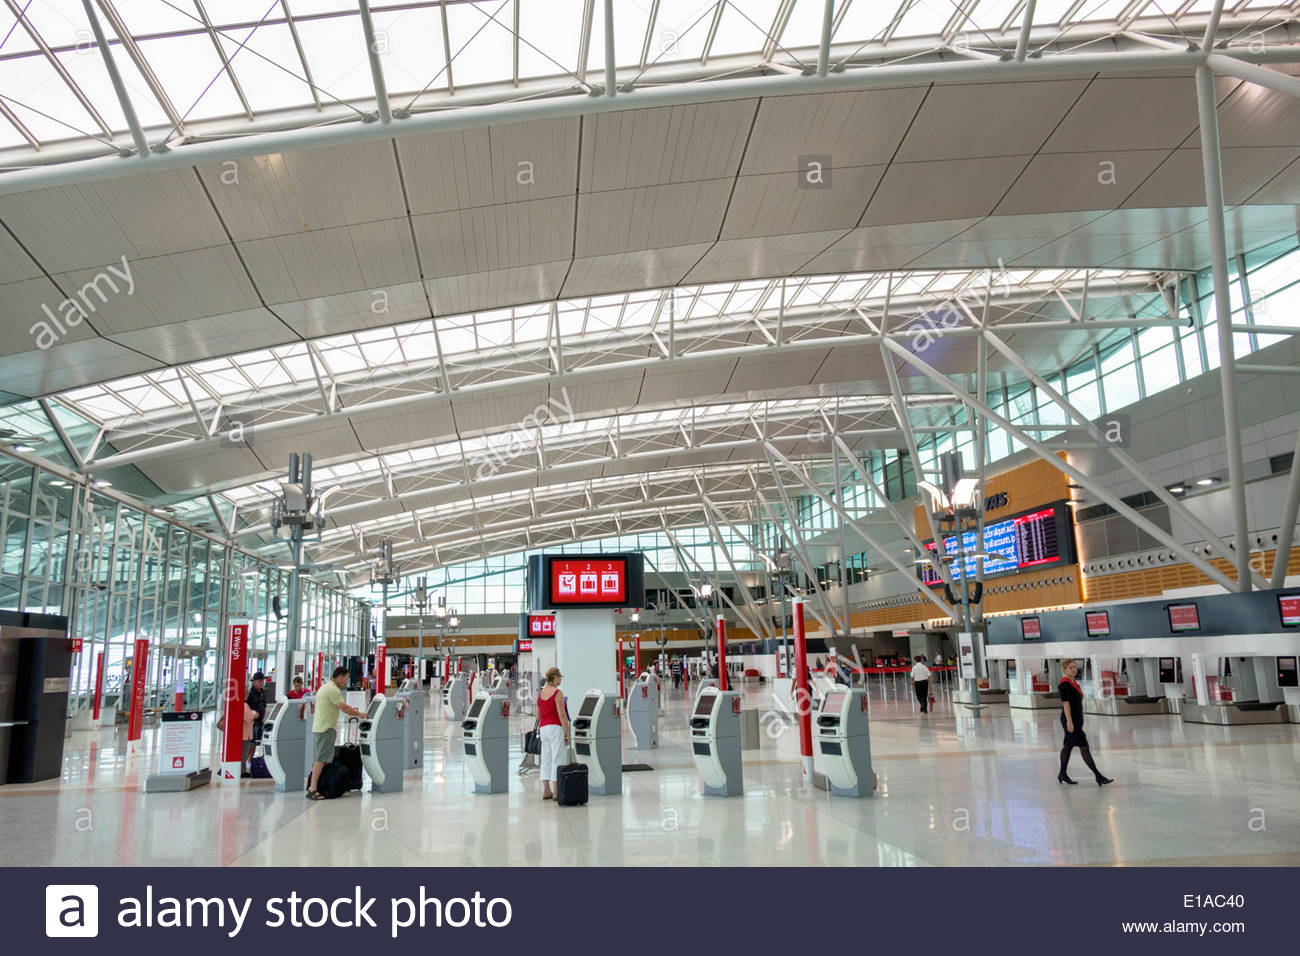 Sydney australia nsw new south wales kingsford smith airport syd terminal concourse inside interior design